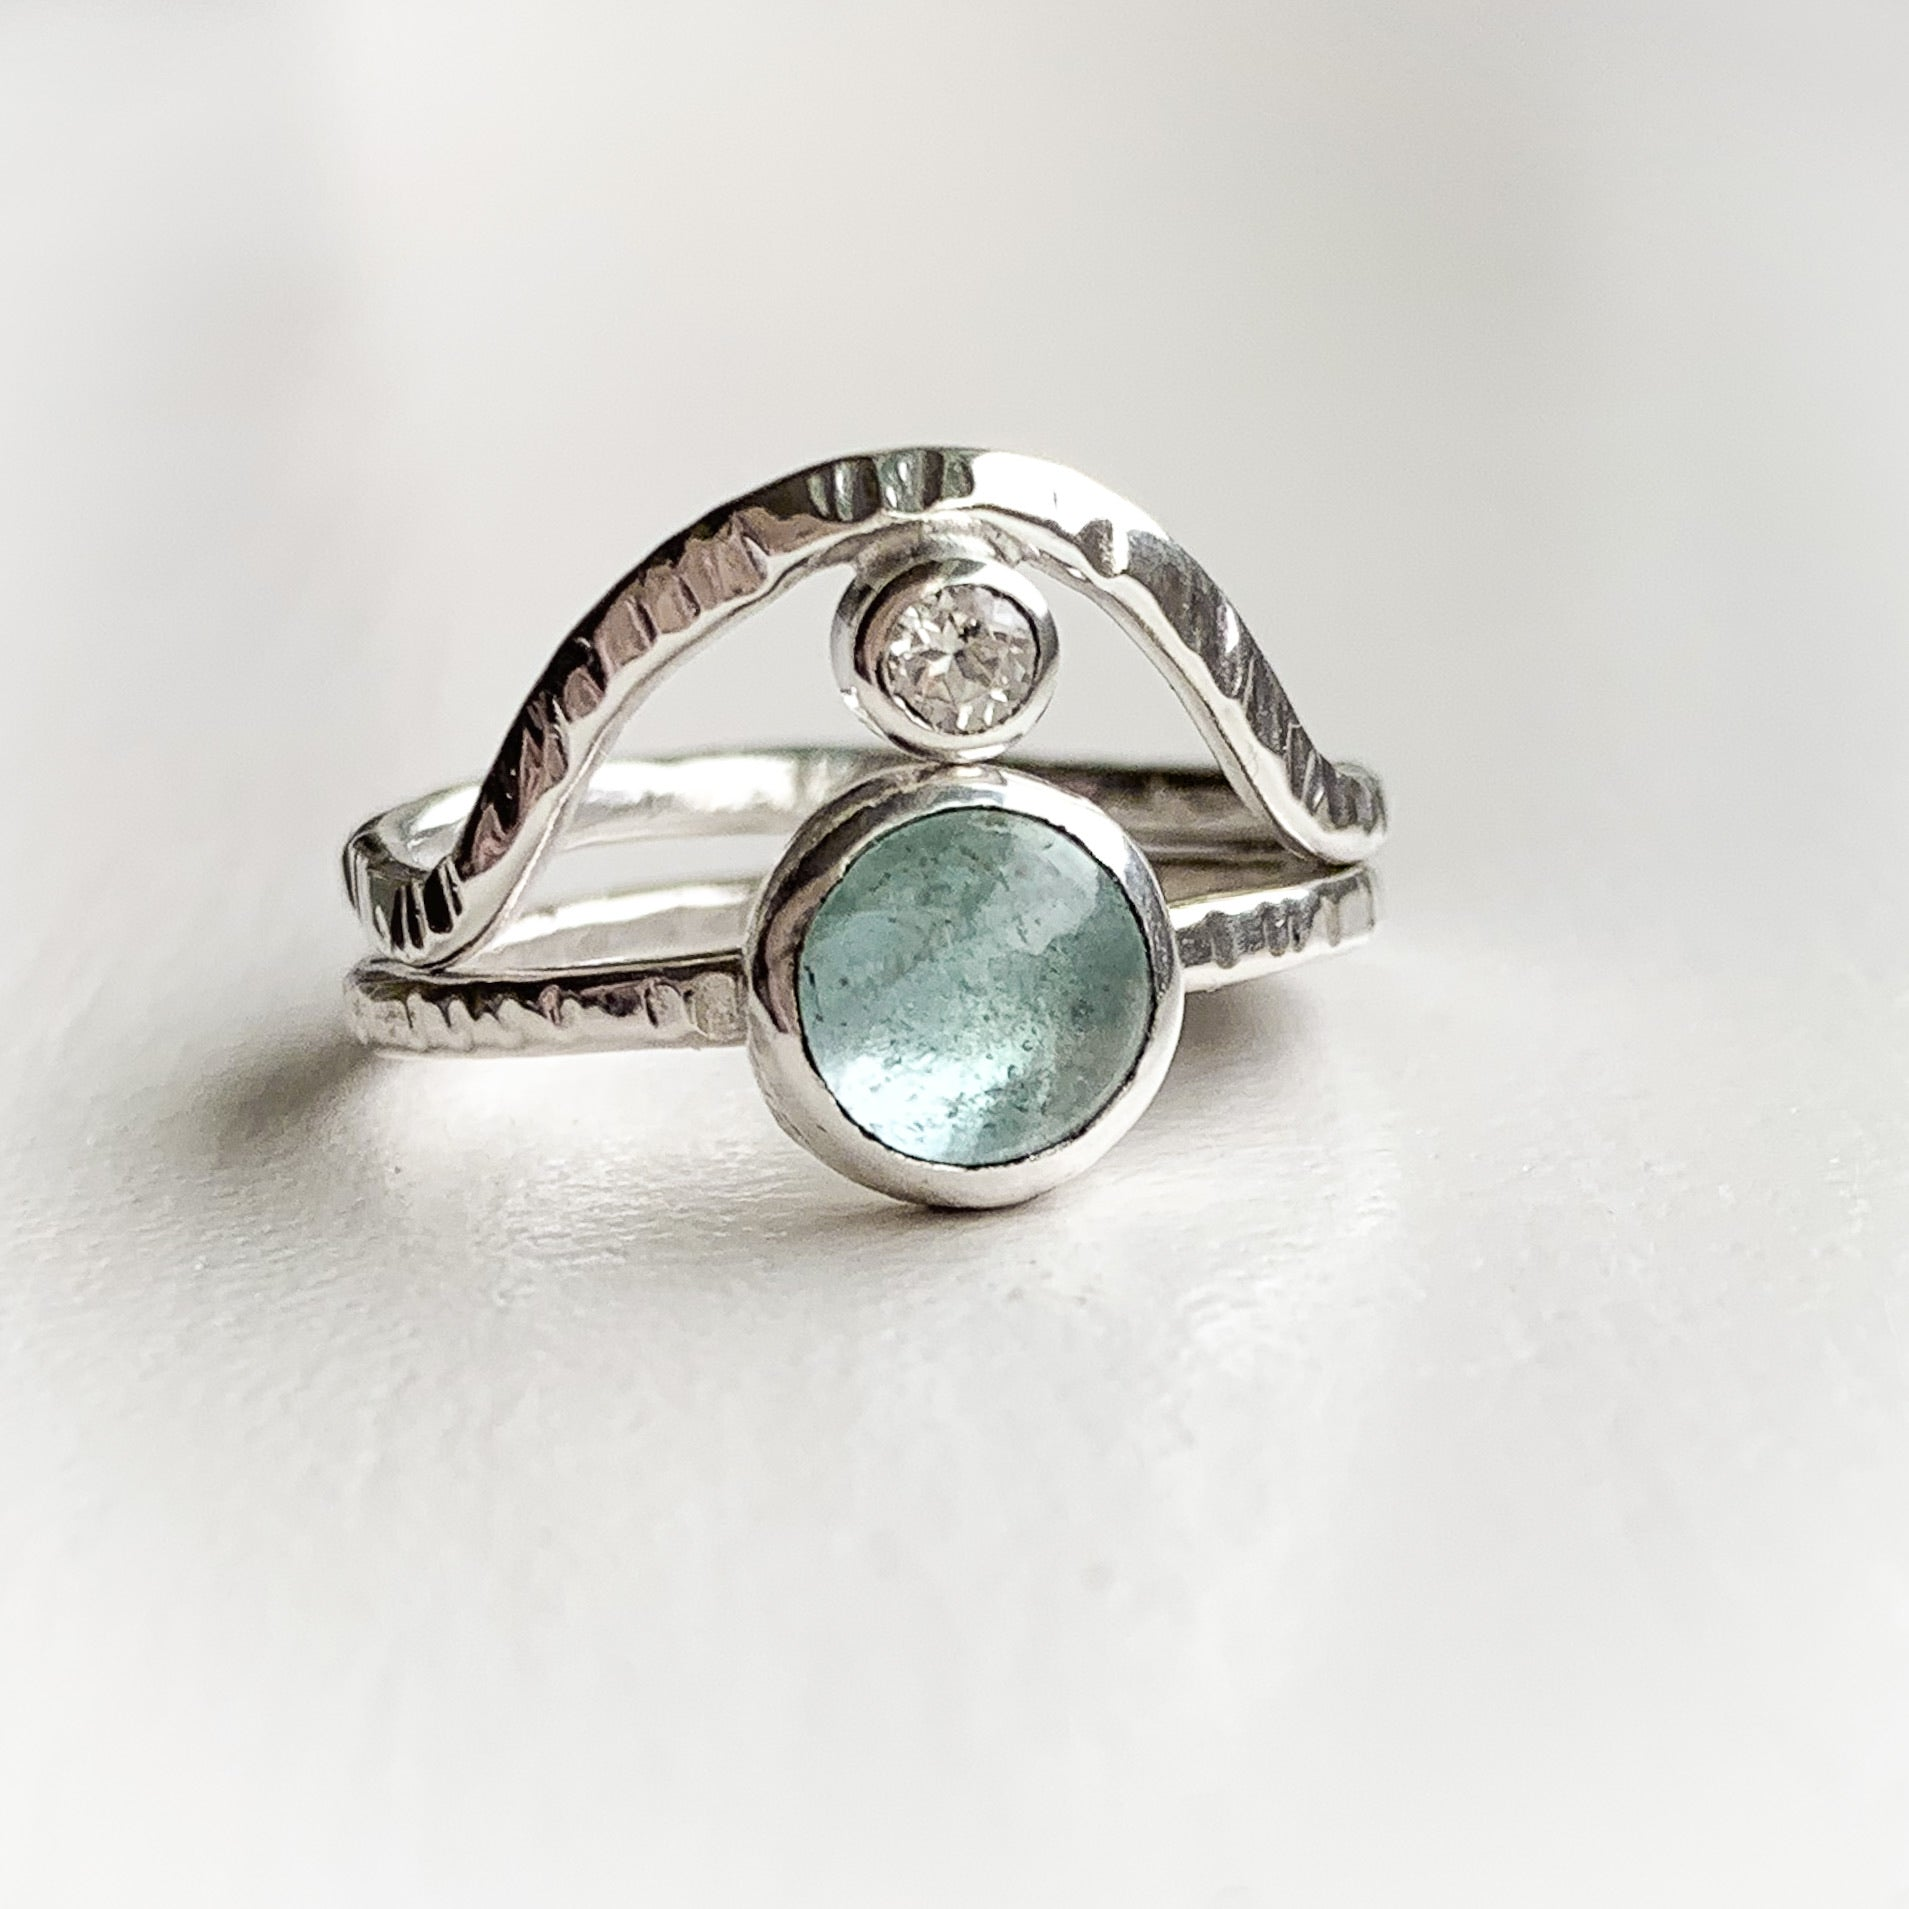 Aquamarine ring set - sterling silver - size 6.5